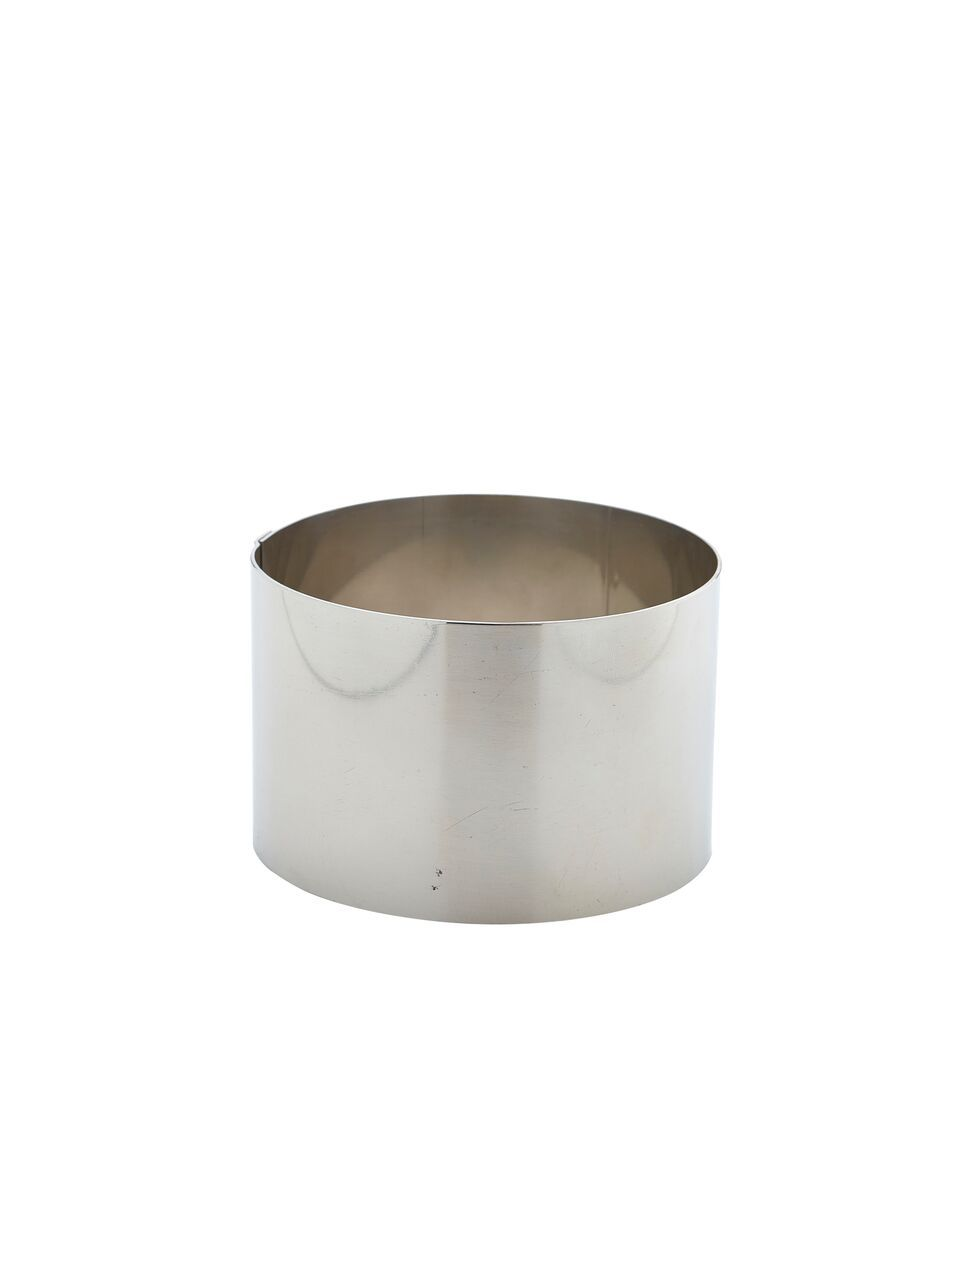 Stainless Steel Mousse Ring 9x6cm